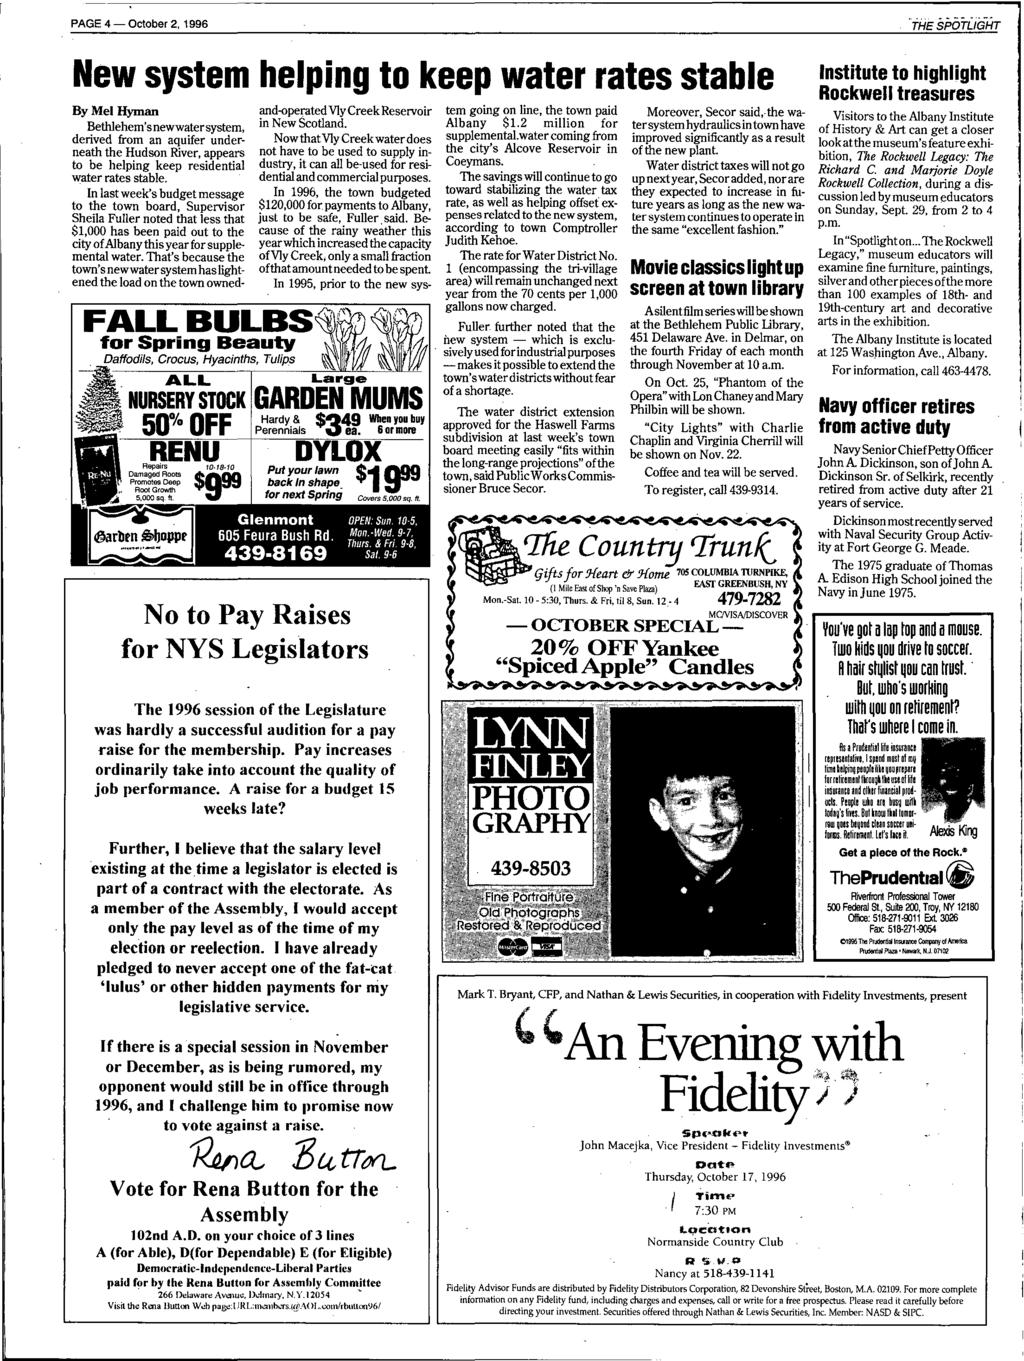 Tree To Return Bethlehem Library Committee Restores Revises Old Jeep Patriot Fuse Box Cavity Numbers Page 4 October 2 1996 New System Helping Keep Water Rates Stable By